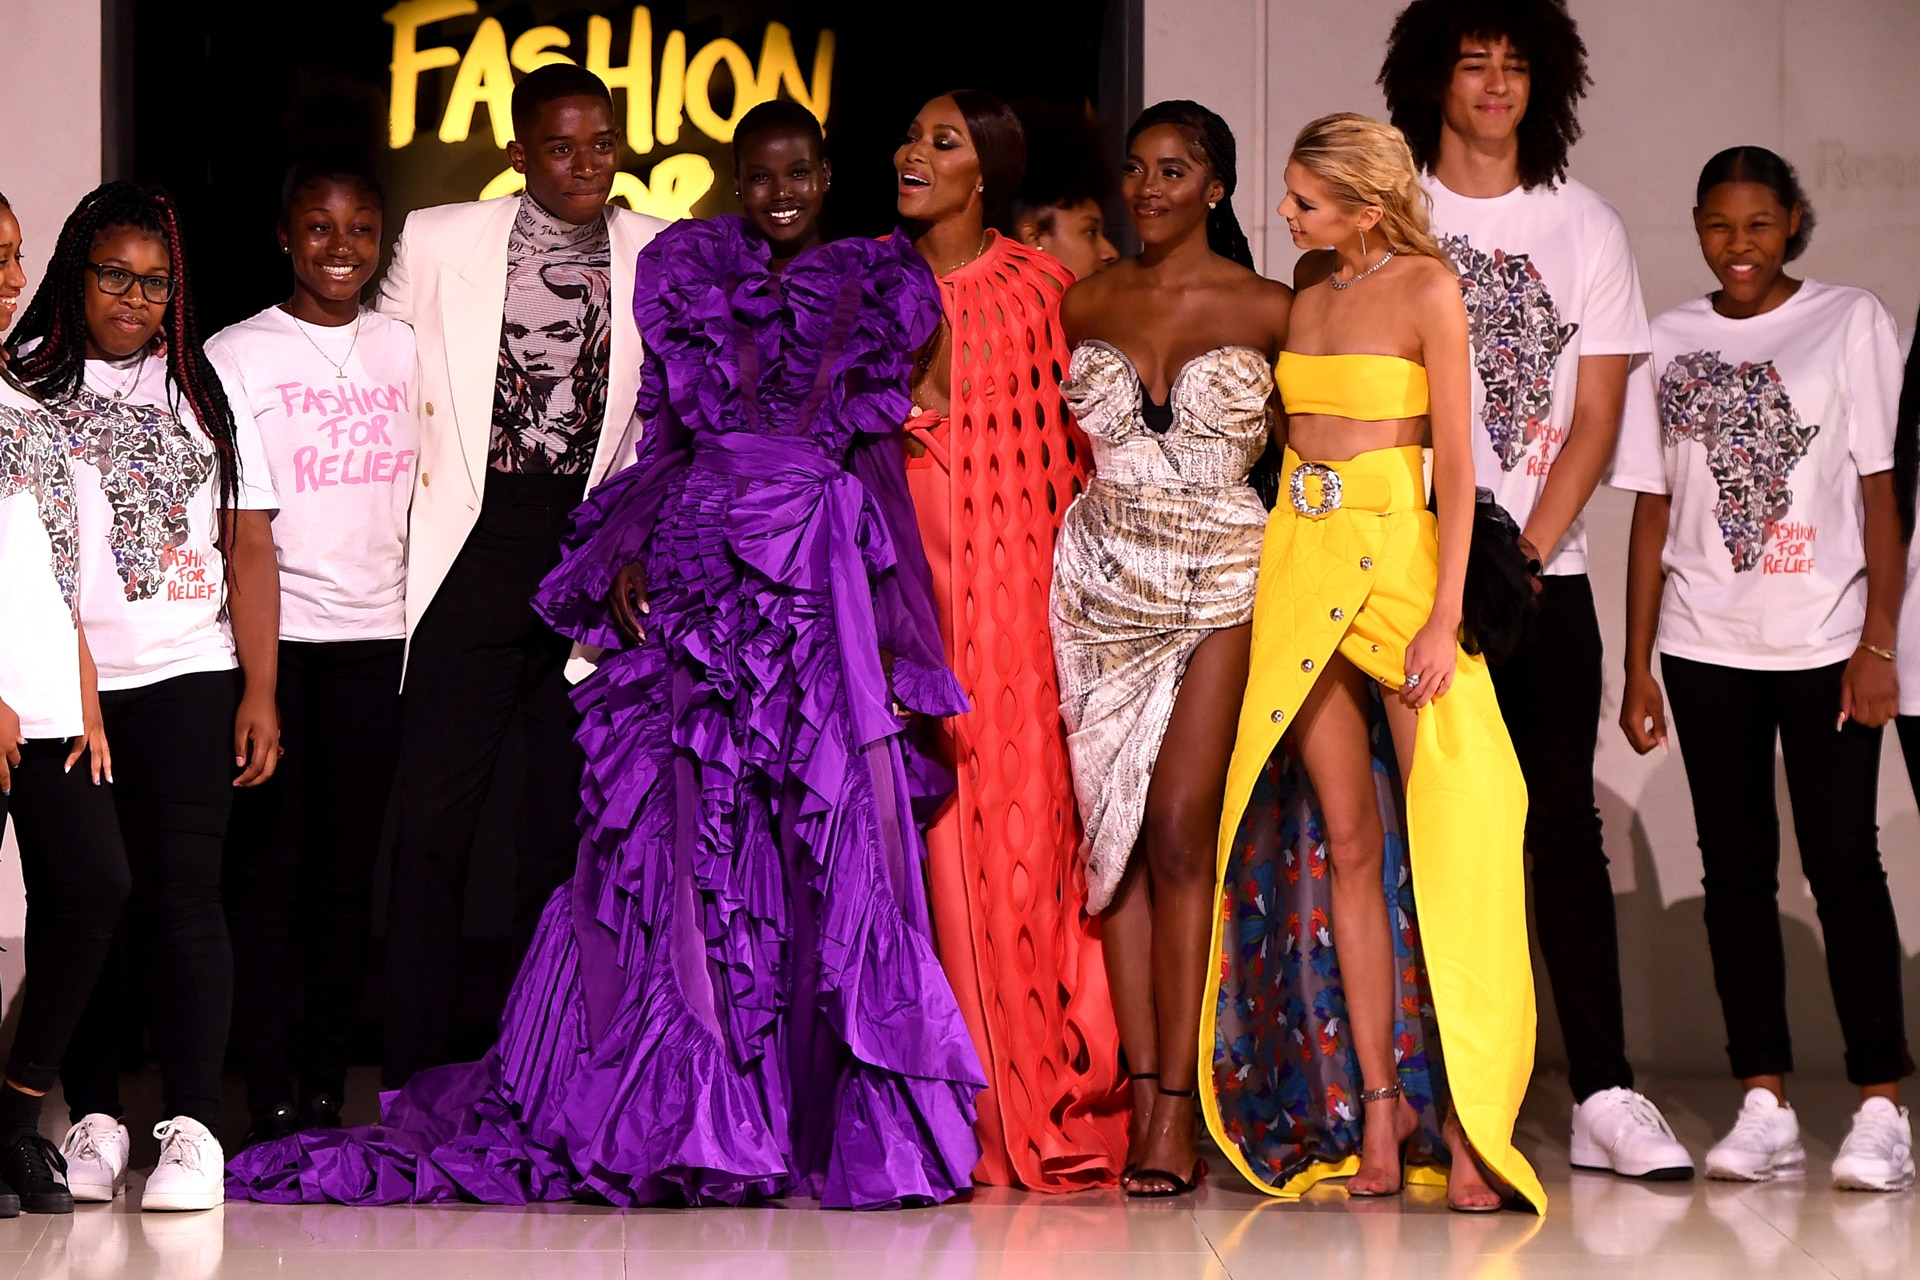 The runway's finale, including students from Elmgreen School and Chrome Hearts's quilted spider web skirt. Image credit: Getty Images